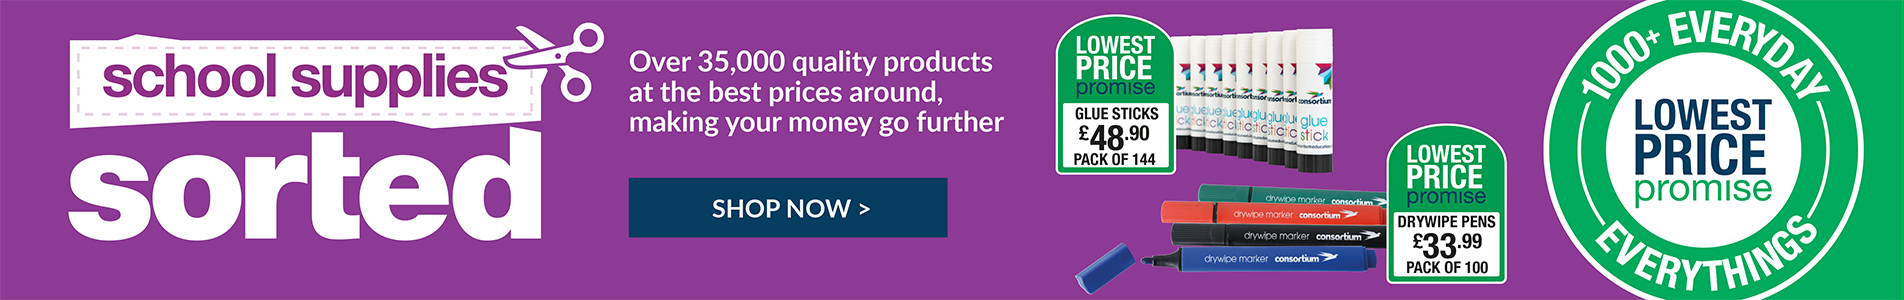 School supplies sorted - quality products at the best prices around!